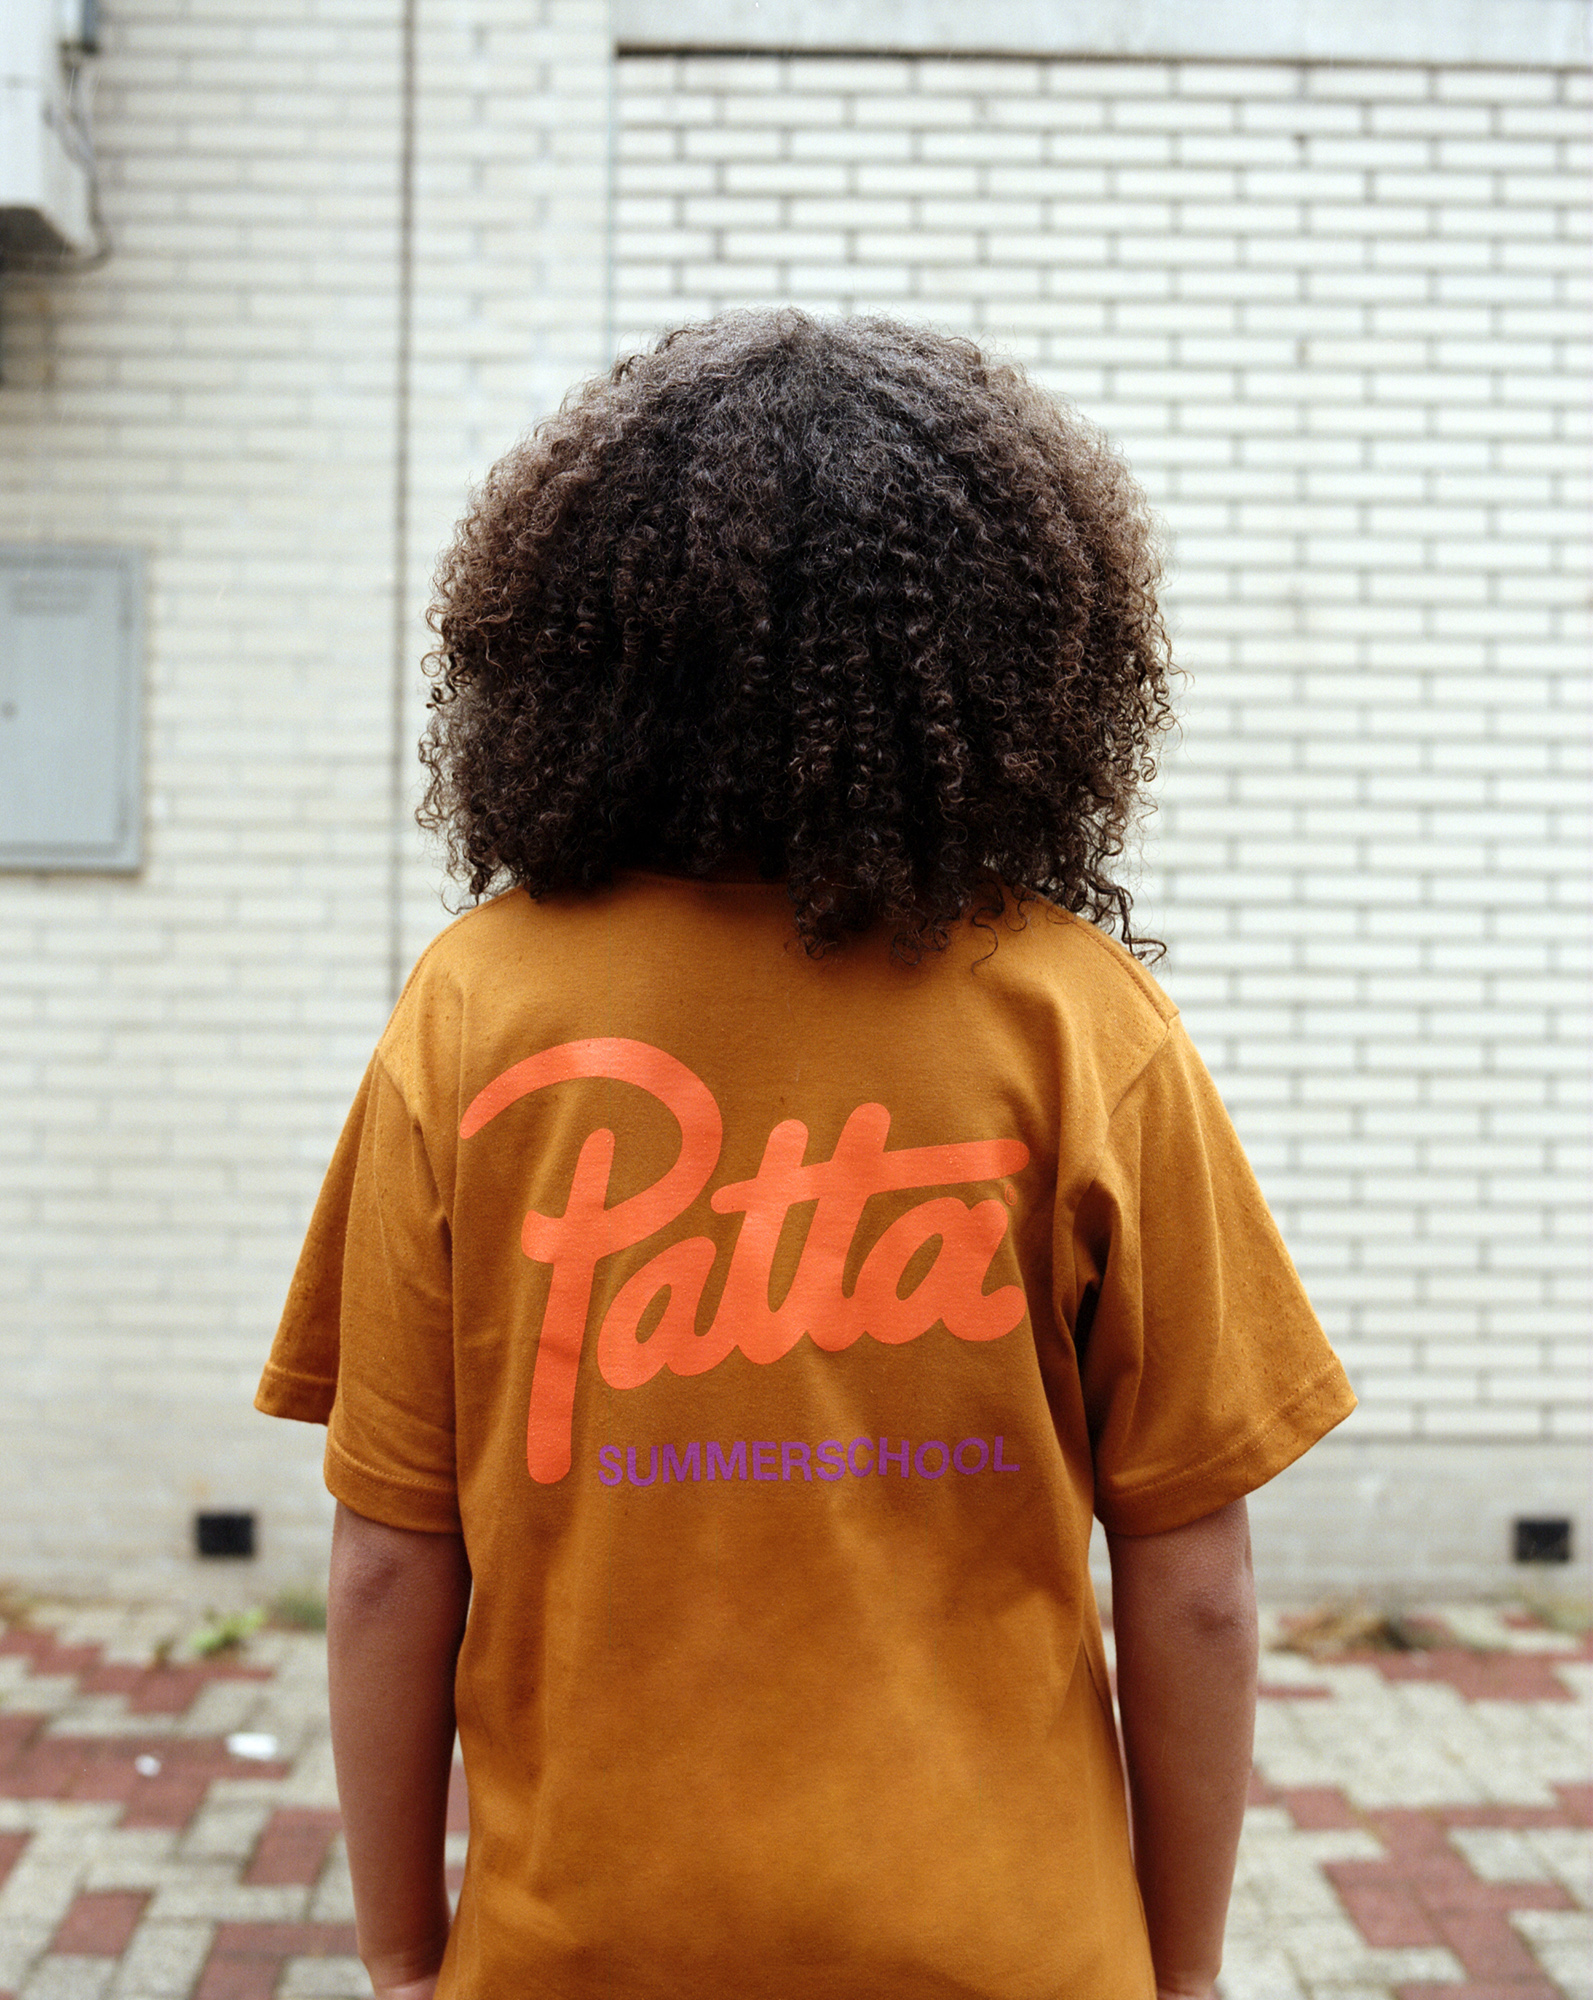 OSCAM x Patta Summerschool T-shirts